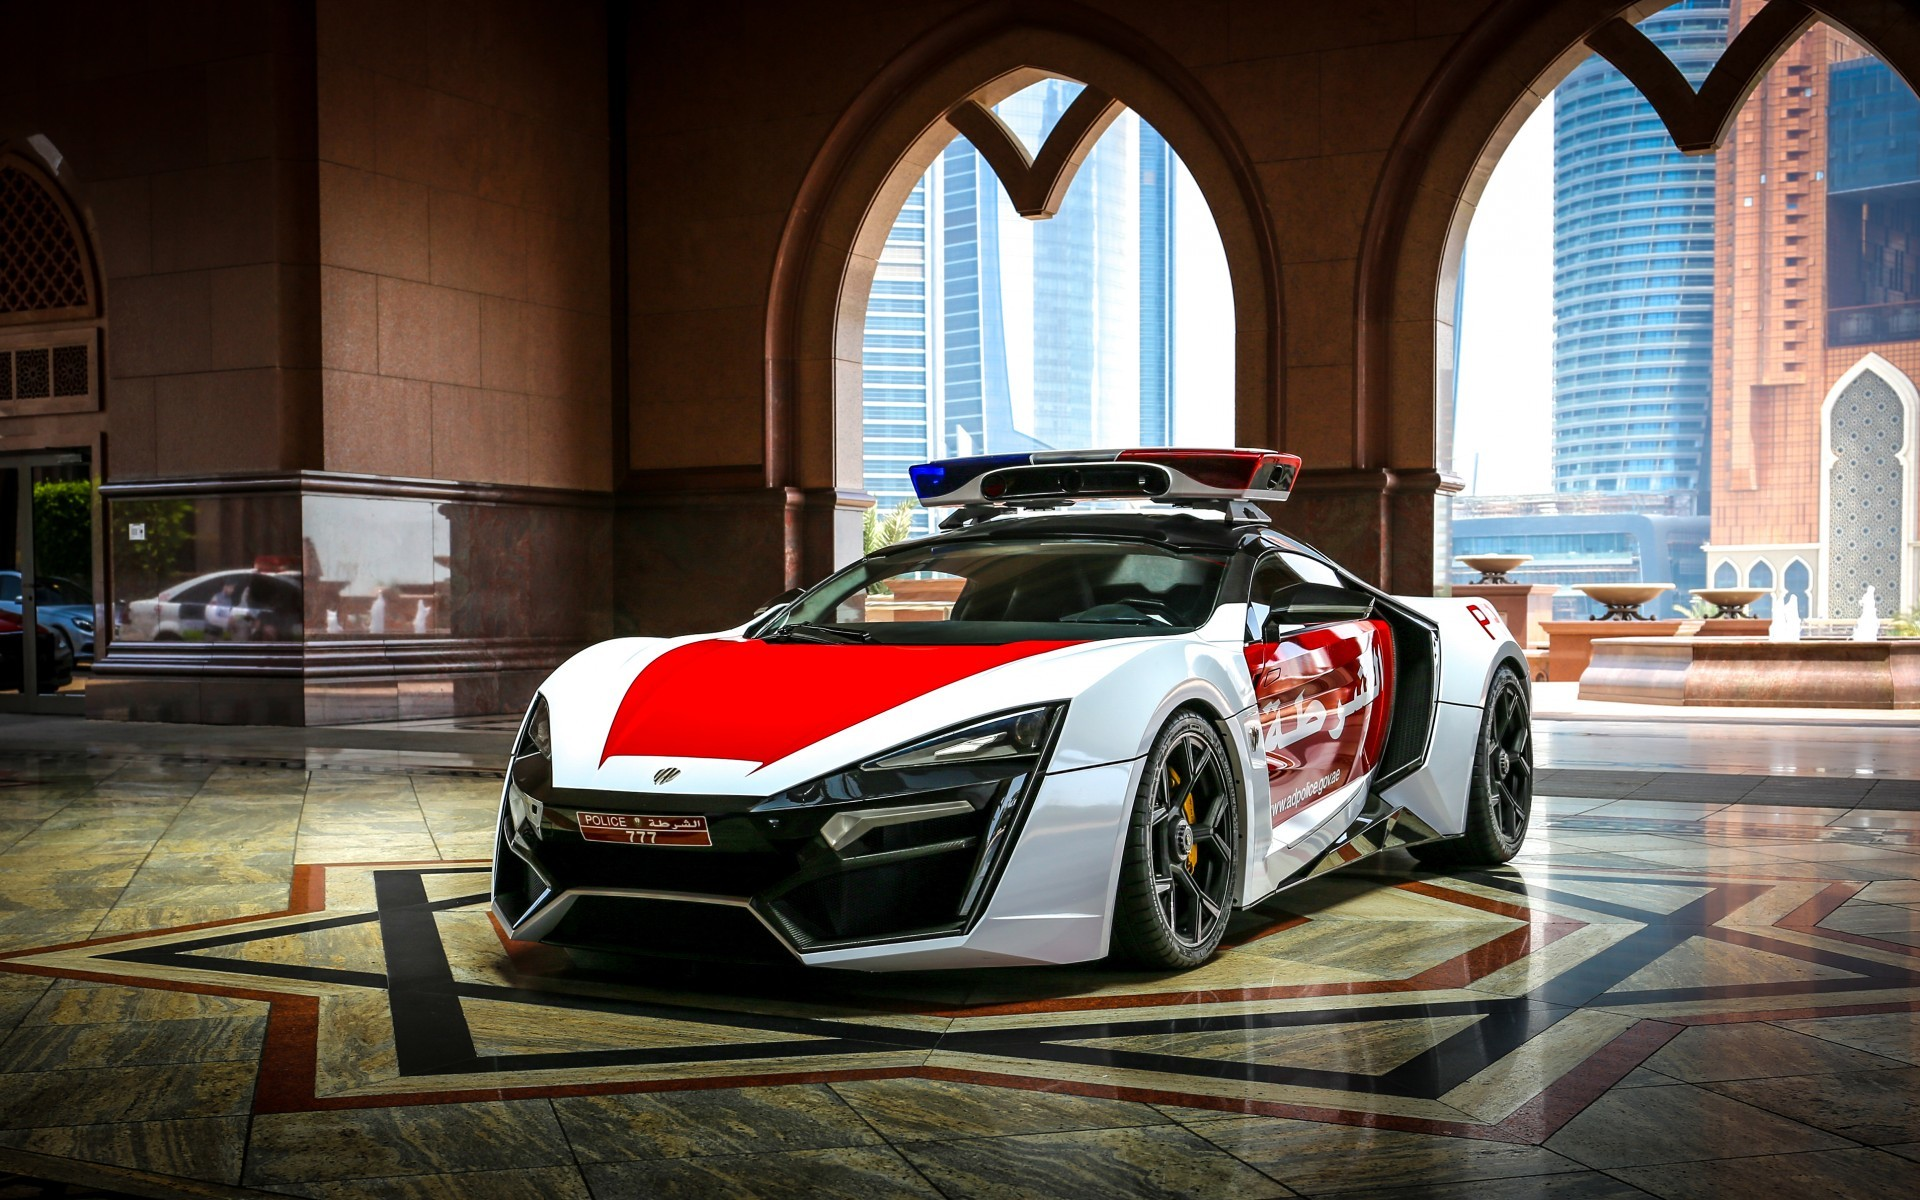 Res: 1920x1200, lykan hypersport police car abu dhabi 4k UHD wallpaper